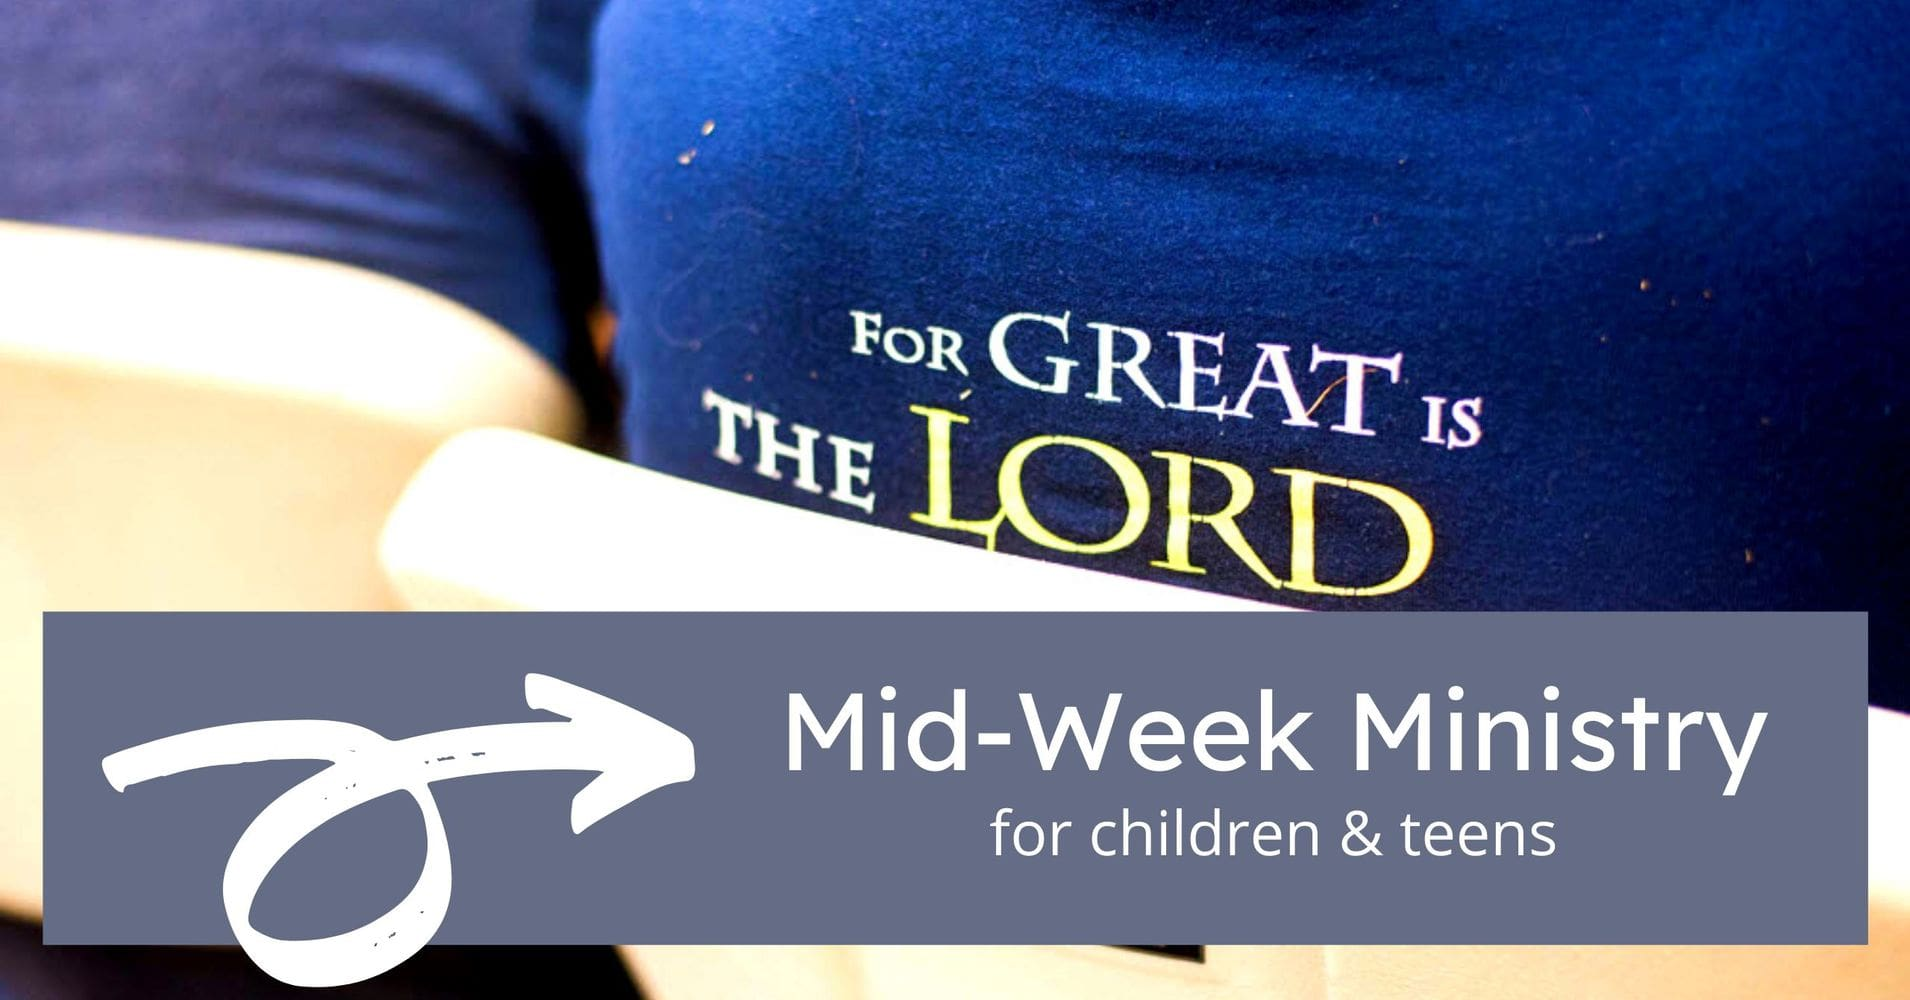 Children and Youth Ministry in Chandler Arizona